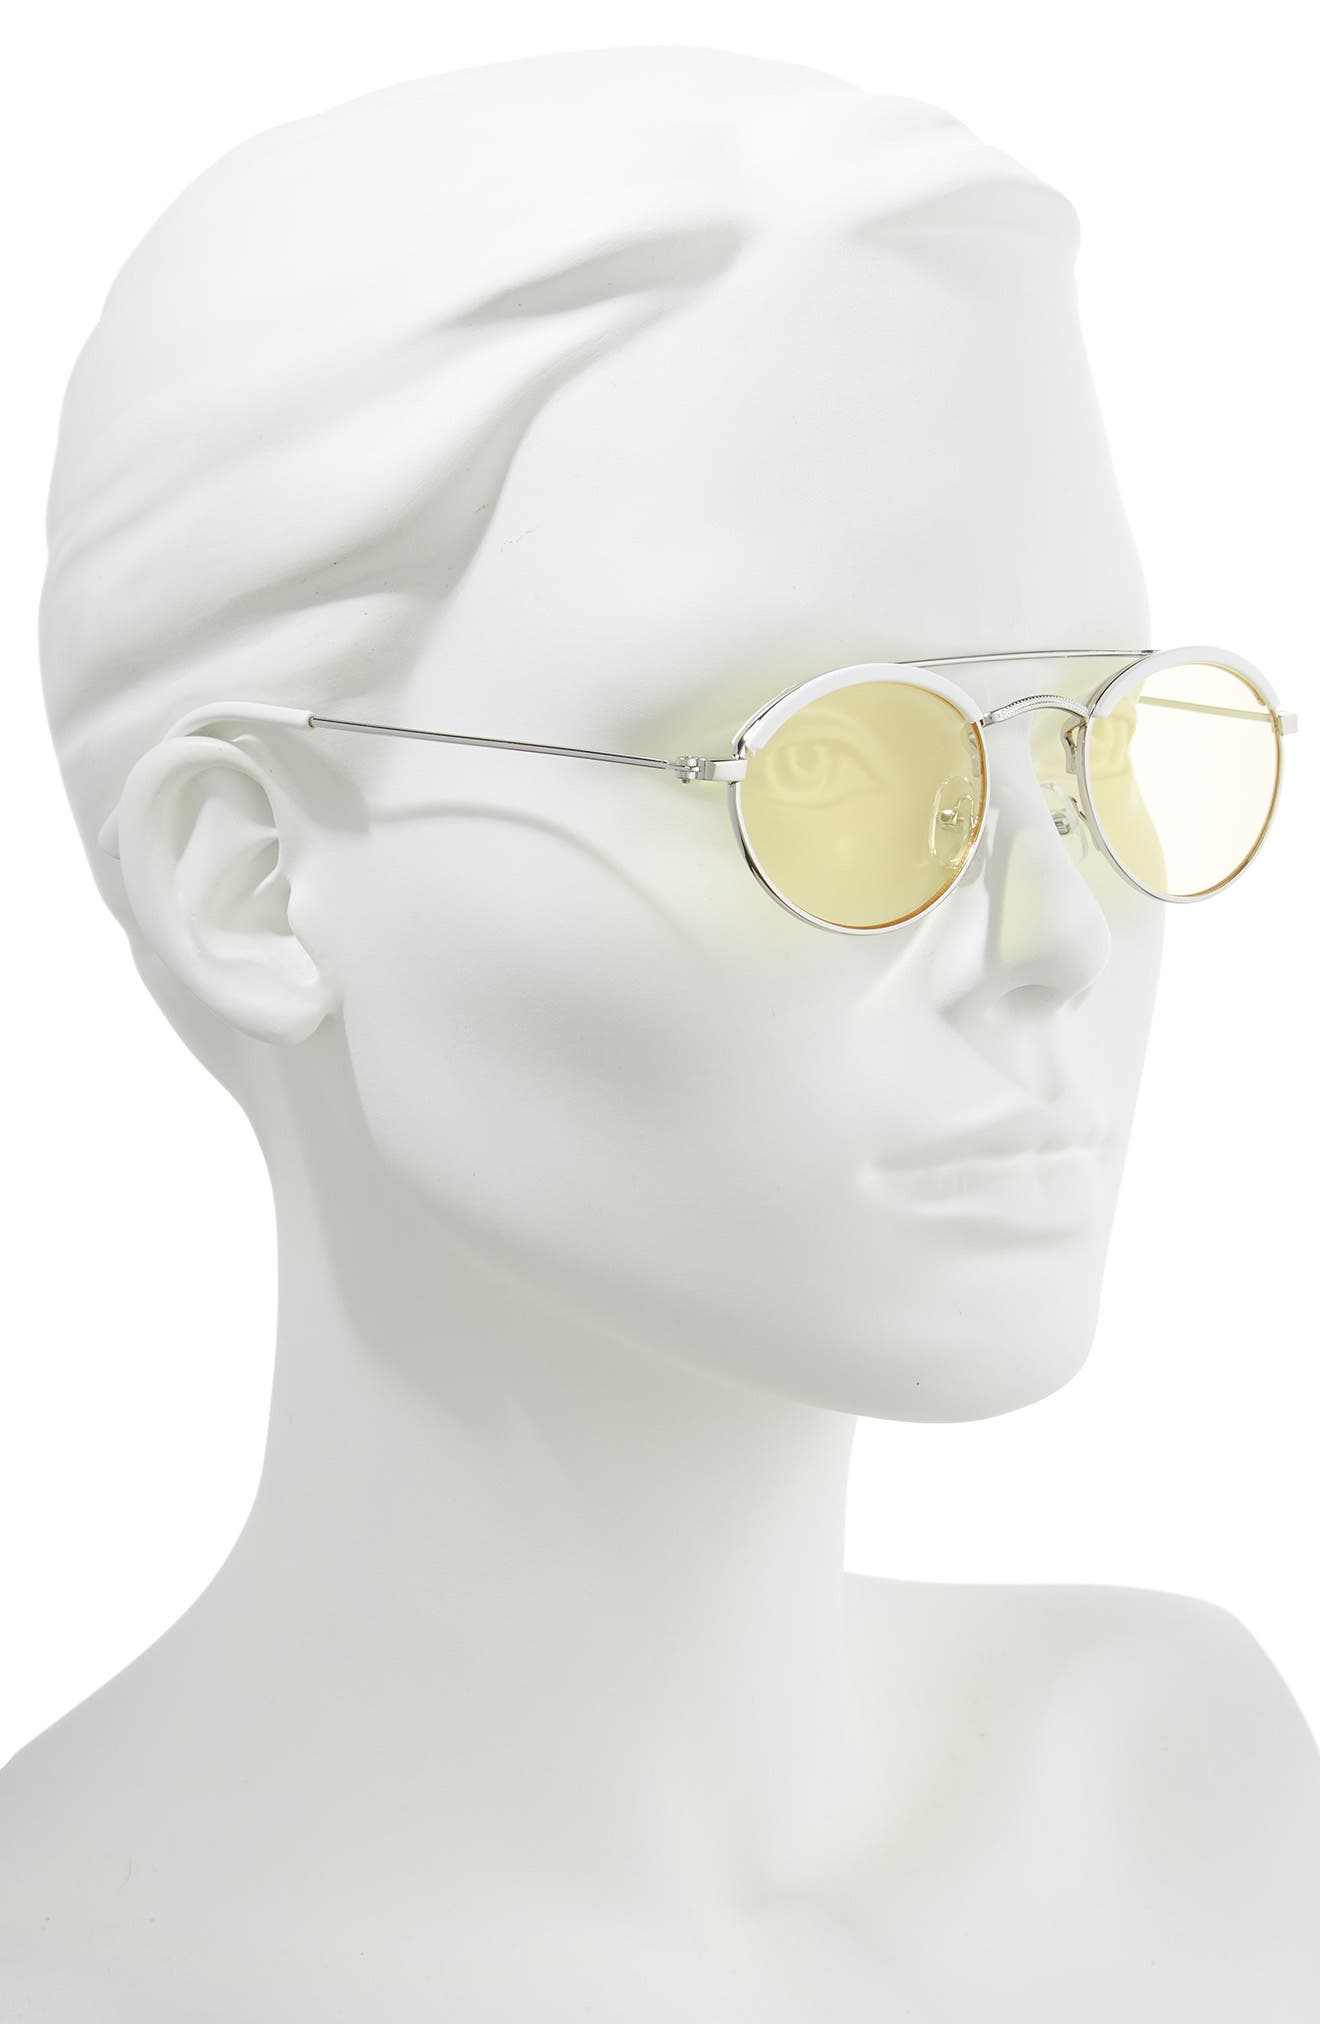 50mm Round Sunglasses,                             Alternate thumbnail 2, color,                             WHITE/ YELLOW